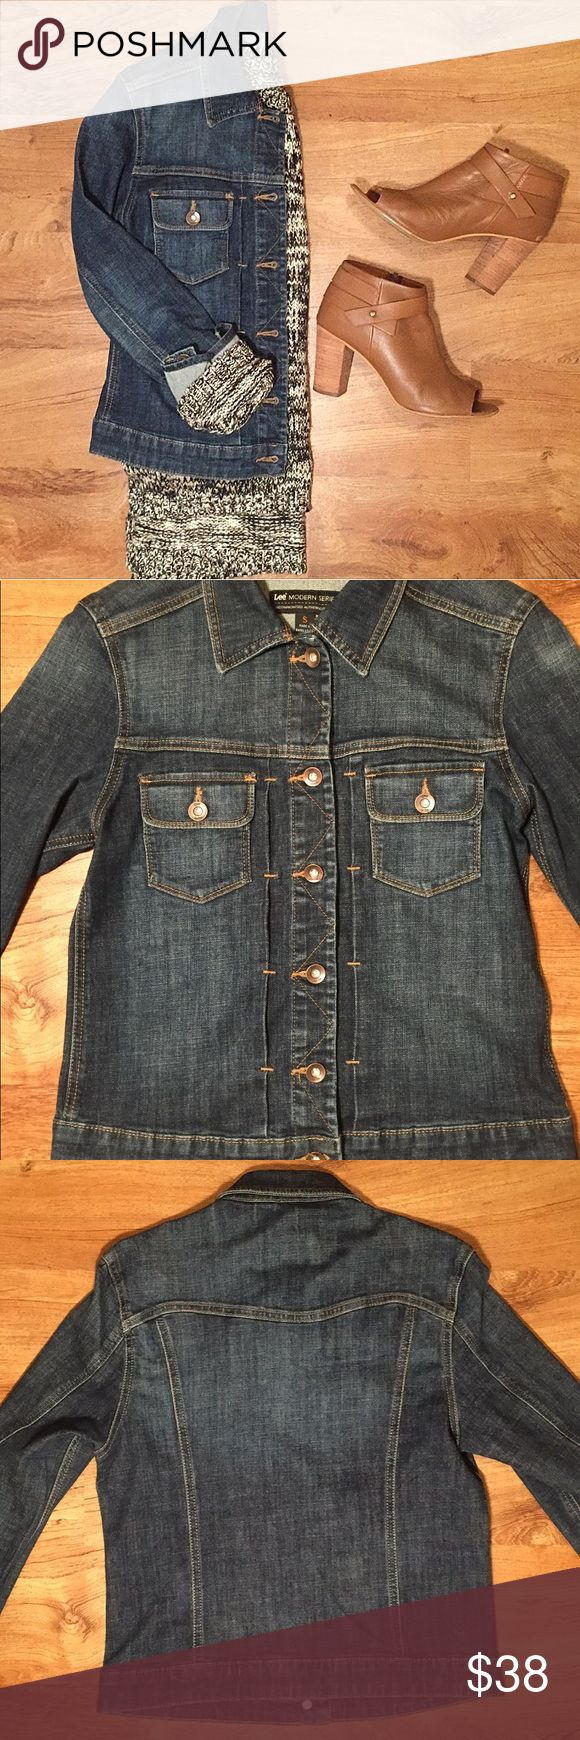 ▪️Lee▪️ Denim Jacket Lee Modern Series • Dark Denim Jacket • NWOT • A perfect staple piece!!  Measurements Laying Flat: Armpit to Armpit 17 in • Shoulder to Bottom 21 in • Inside Armpit to Bottom of Sleeve 17 in  Material: 64% Cotton • 19% Rayon • 16% Polyester • 1% Spandex Lee Jackets & Coats Jean Jackets